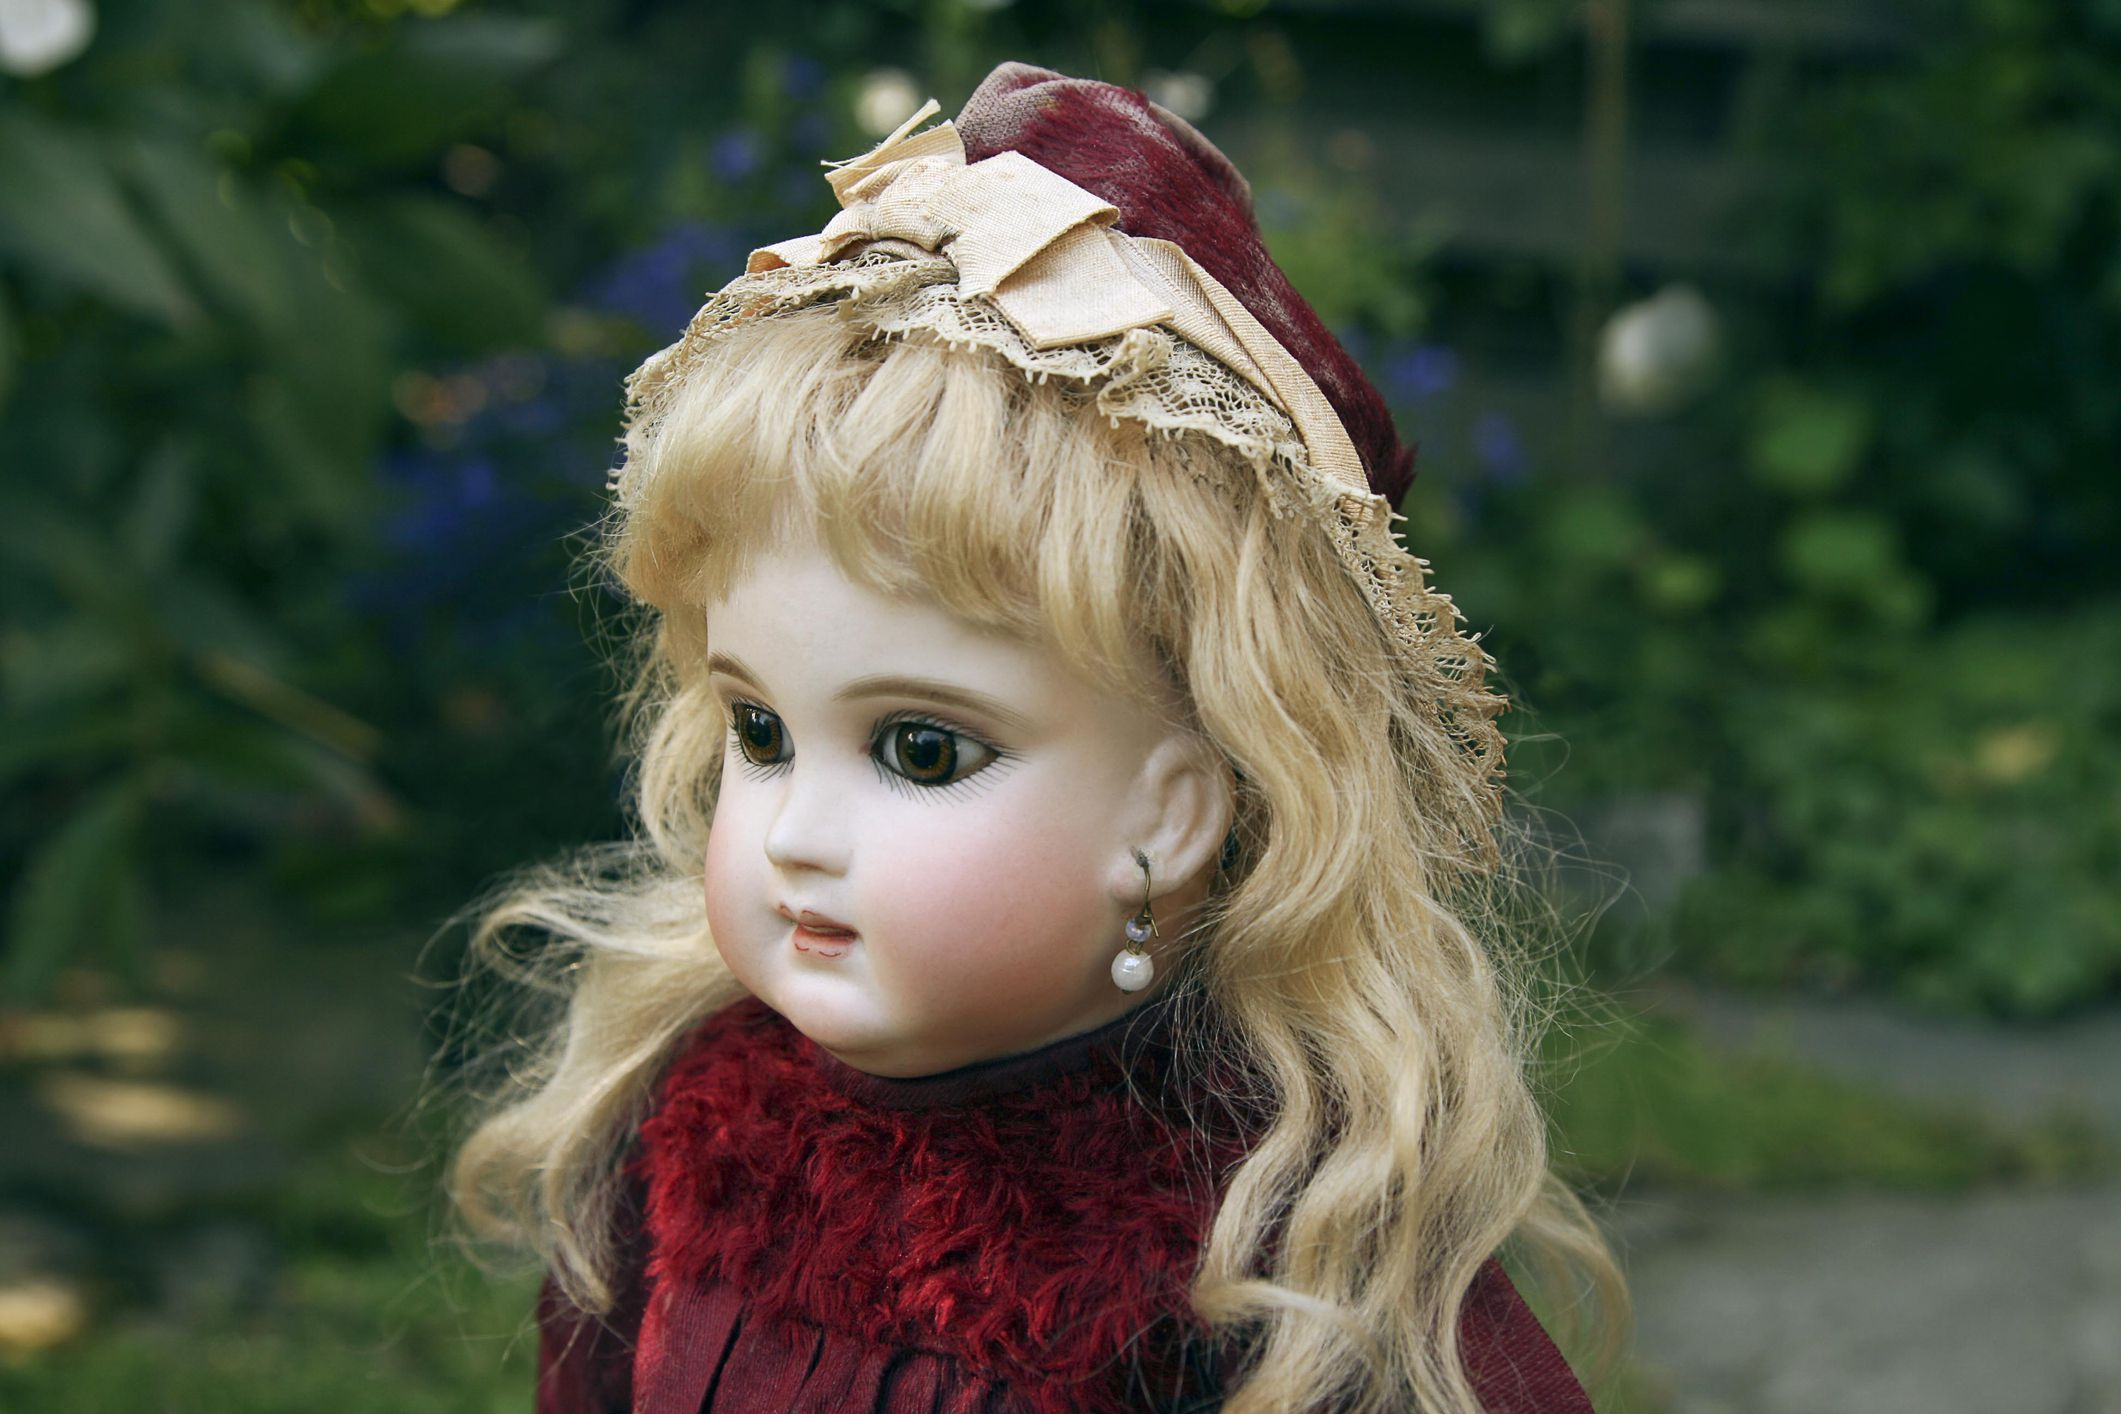 A Guide To Doll And Doll Making Materials